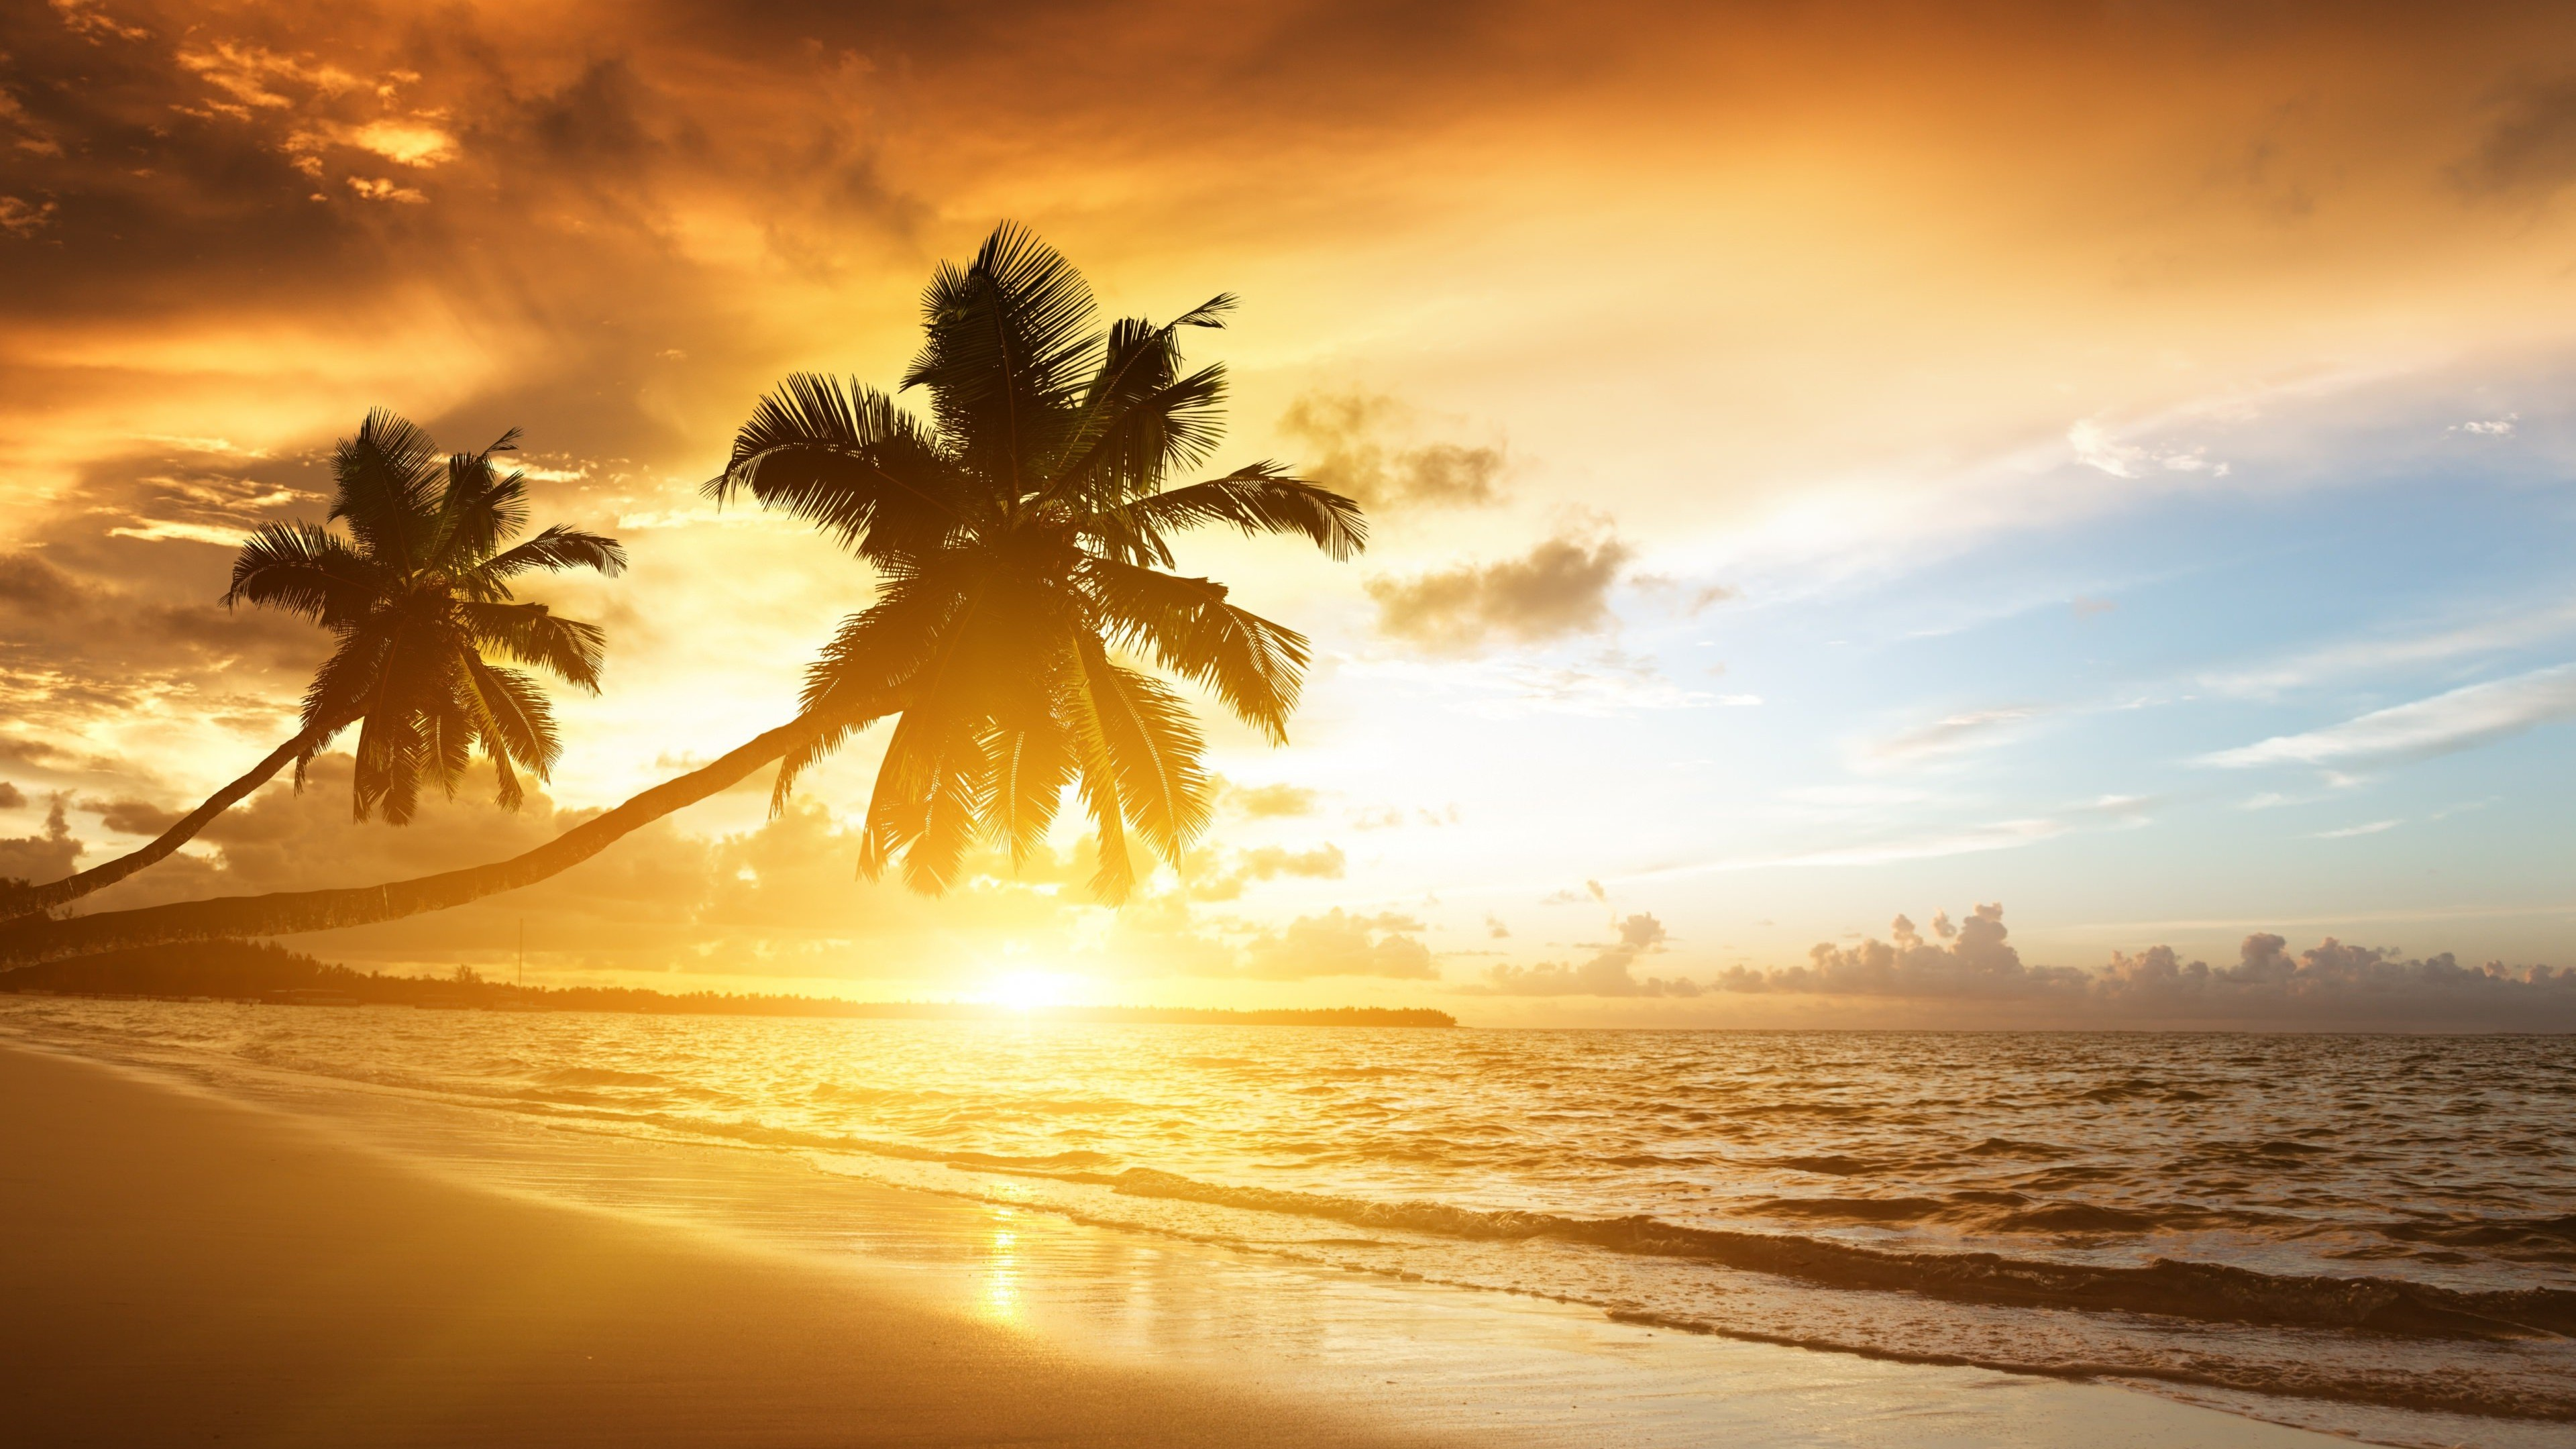 Beach With Palm Trees At Sunset Wallpaper for Desktop 4K 3840x2160